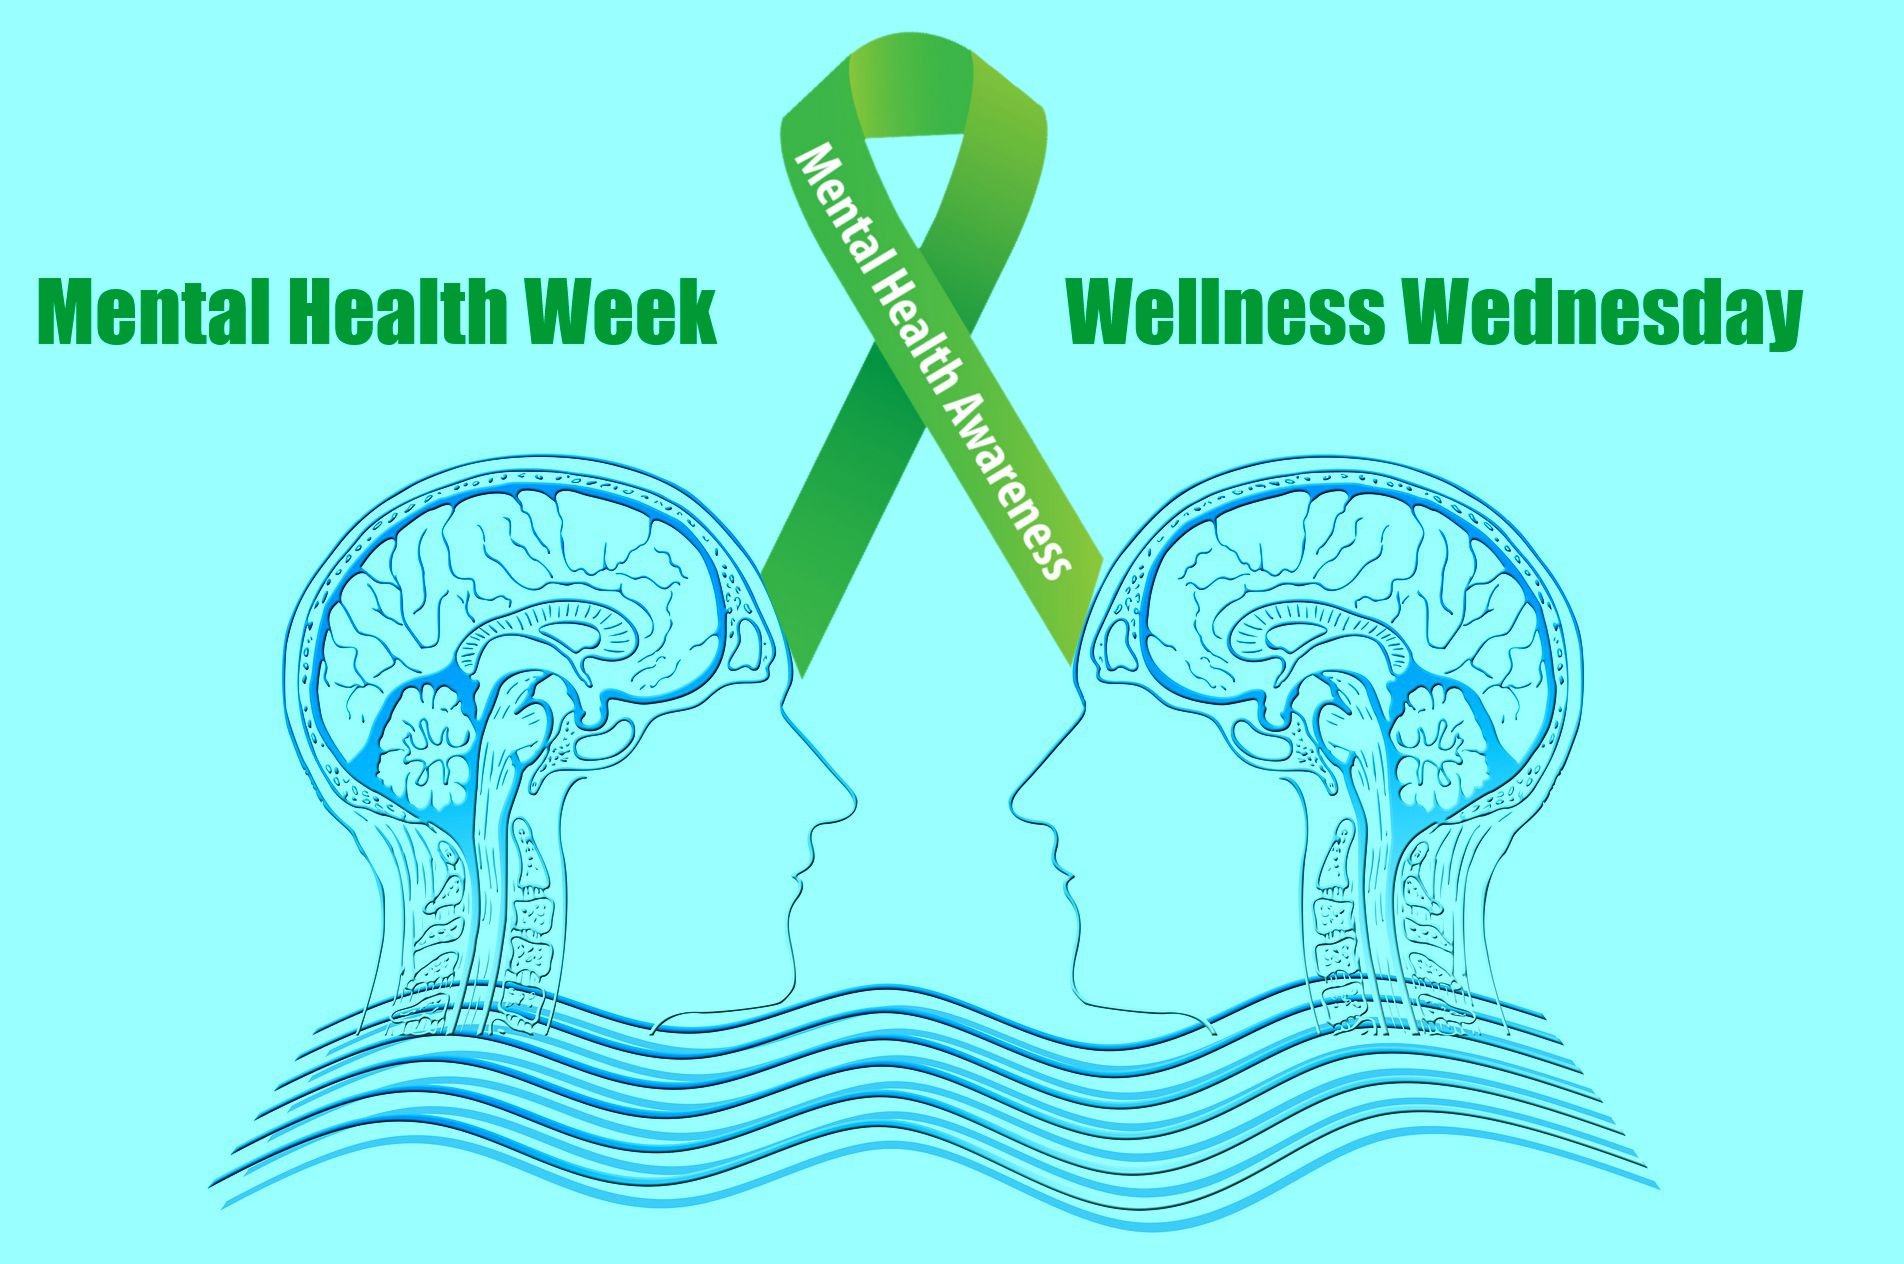 illustration of 2 minds meeting with green mental health awareness ribbon for health week